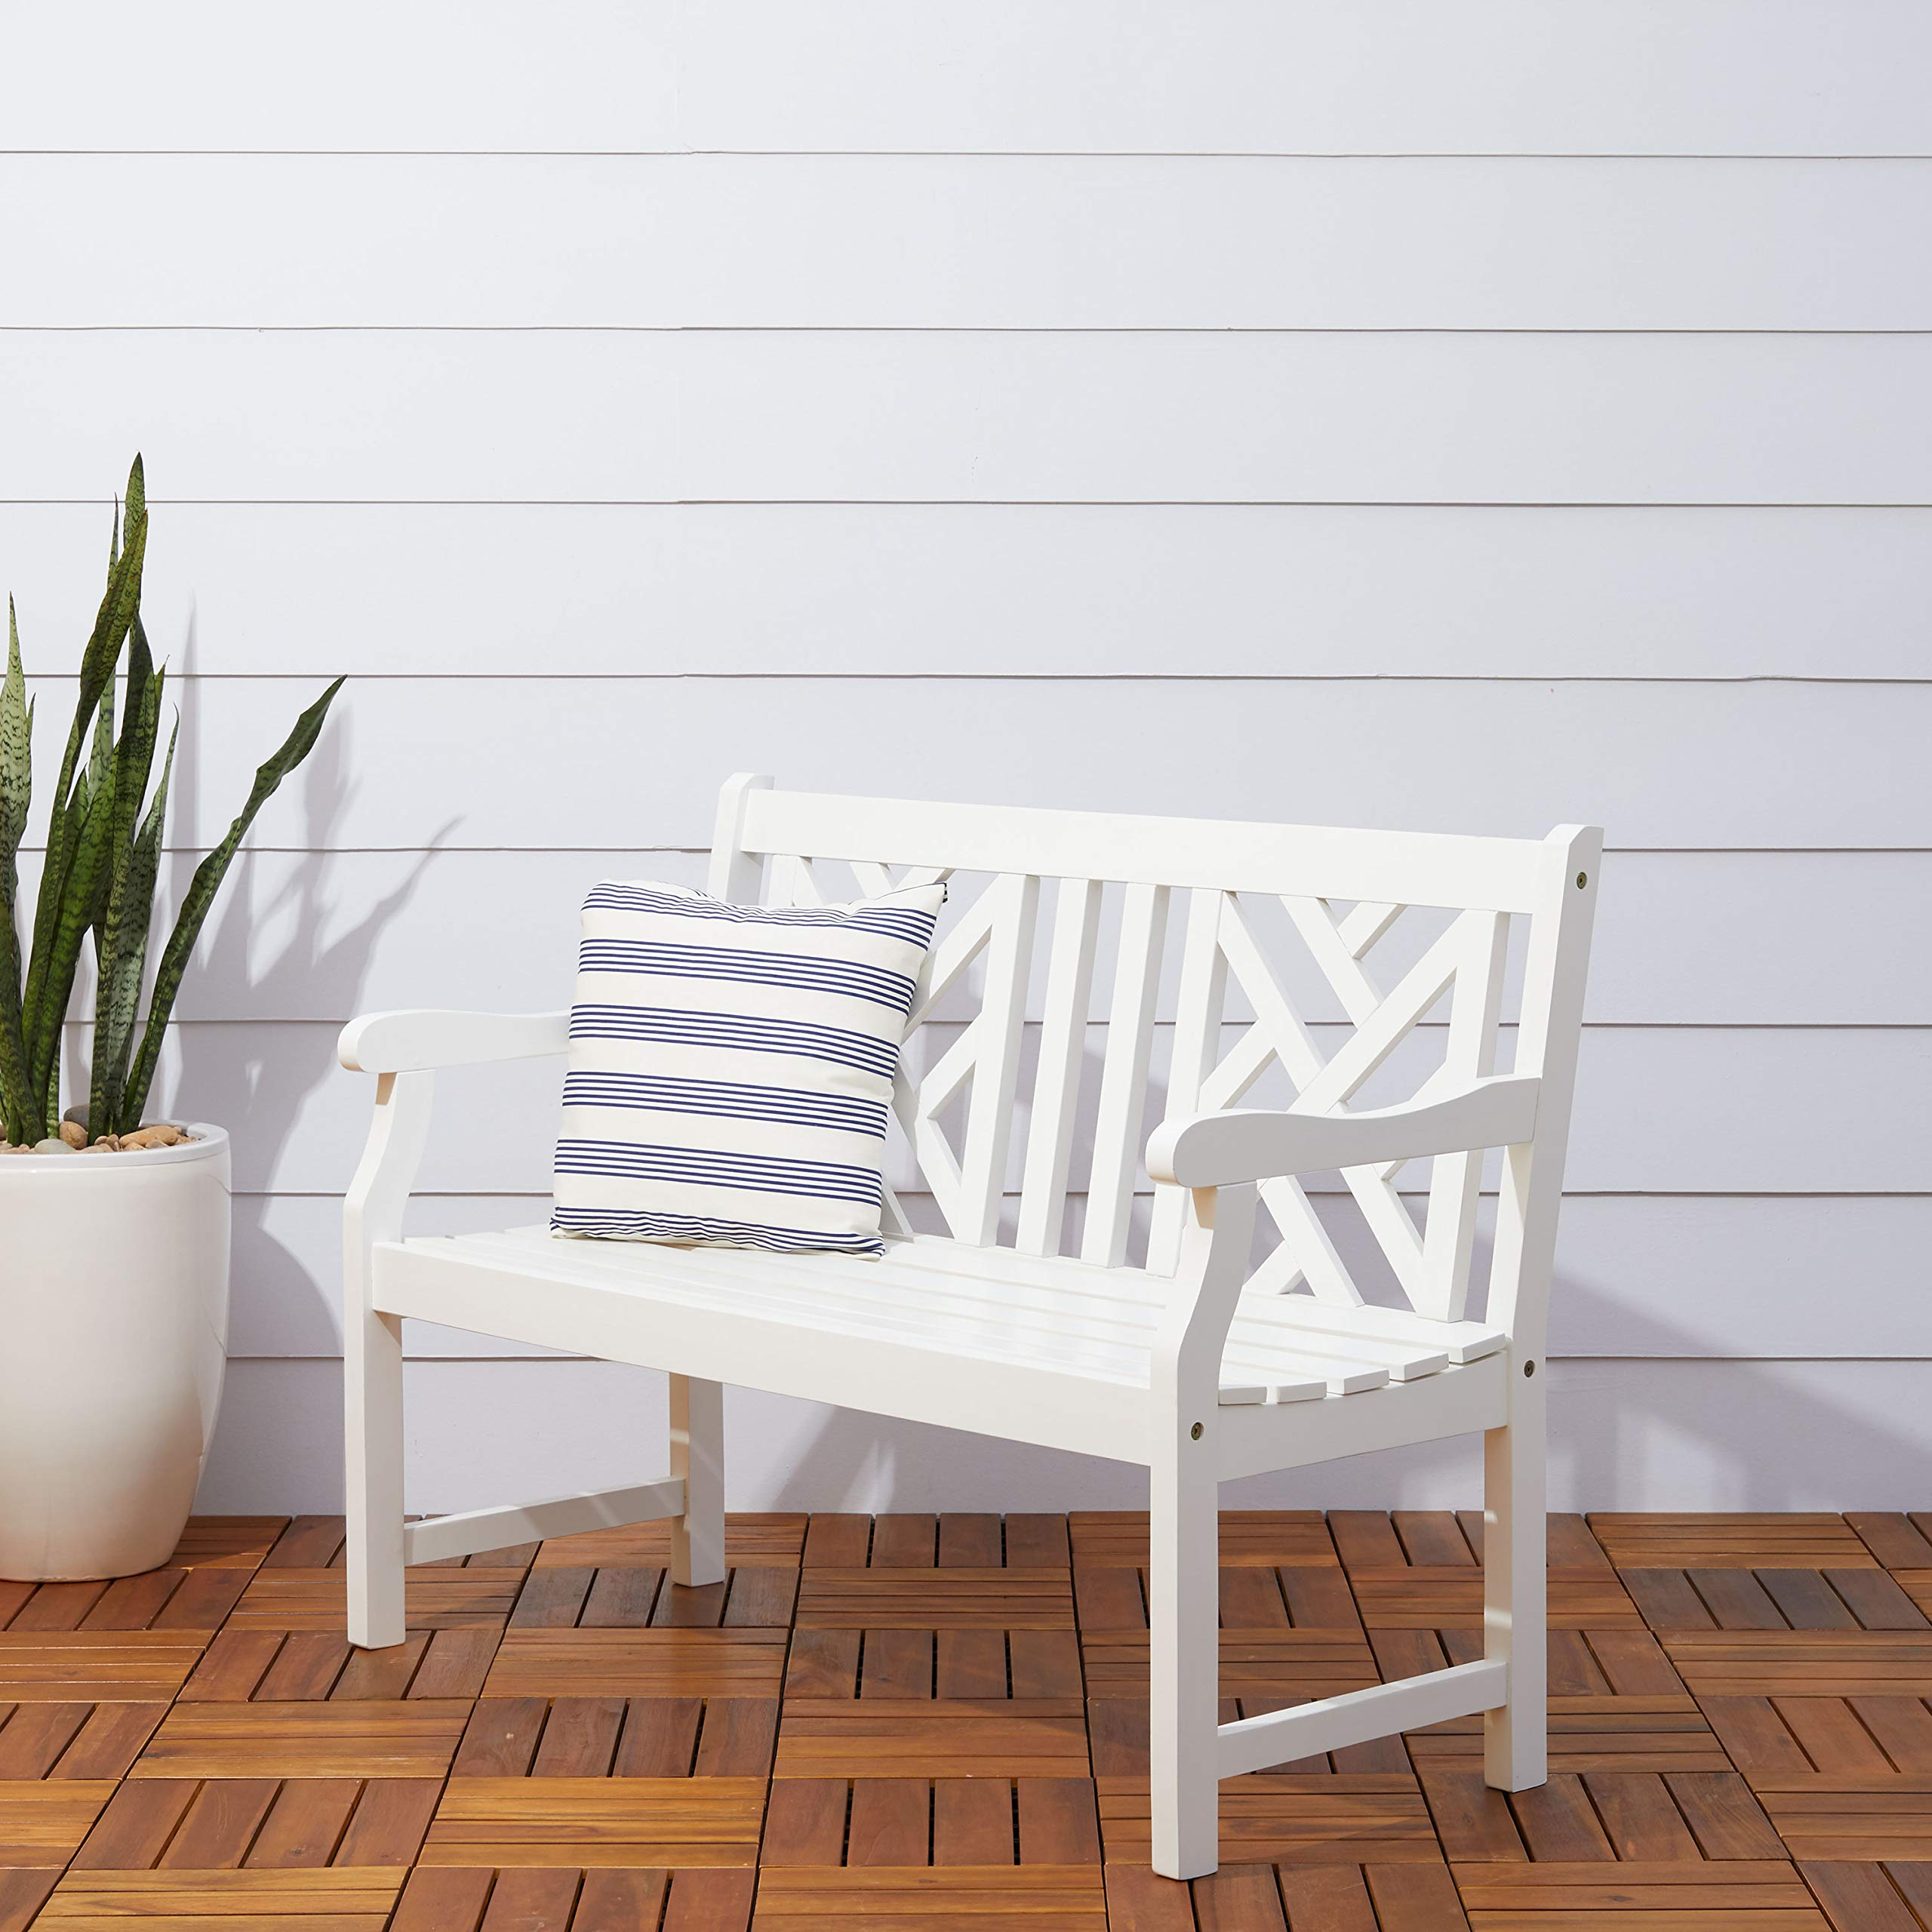 Vifah V1631 Bradley Outdoor Furniture, White-Painted by Vifah